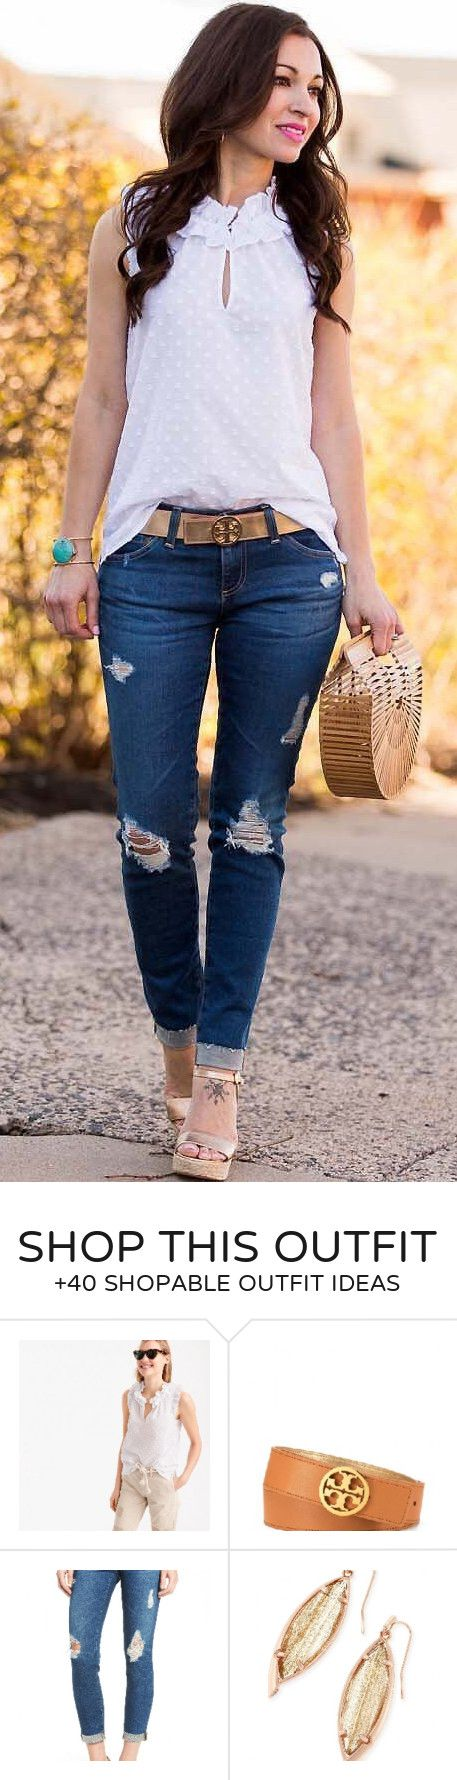 #summer #outfits White Dotted Blouse + Ripped Jeans + Wood Clutch